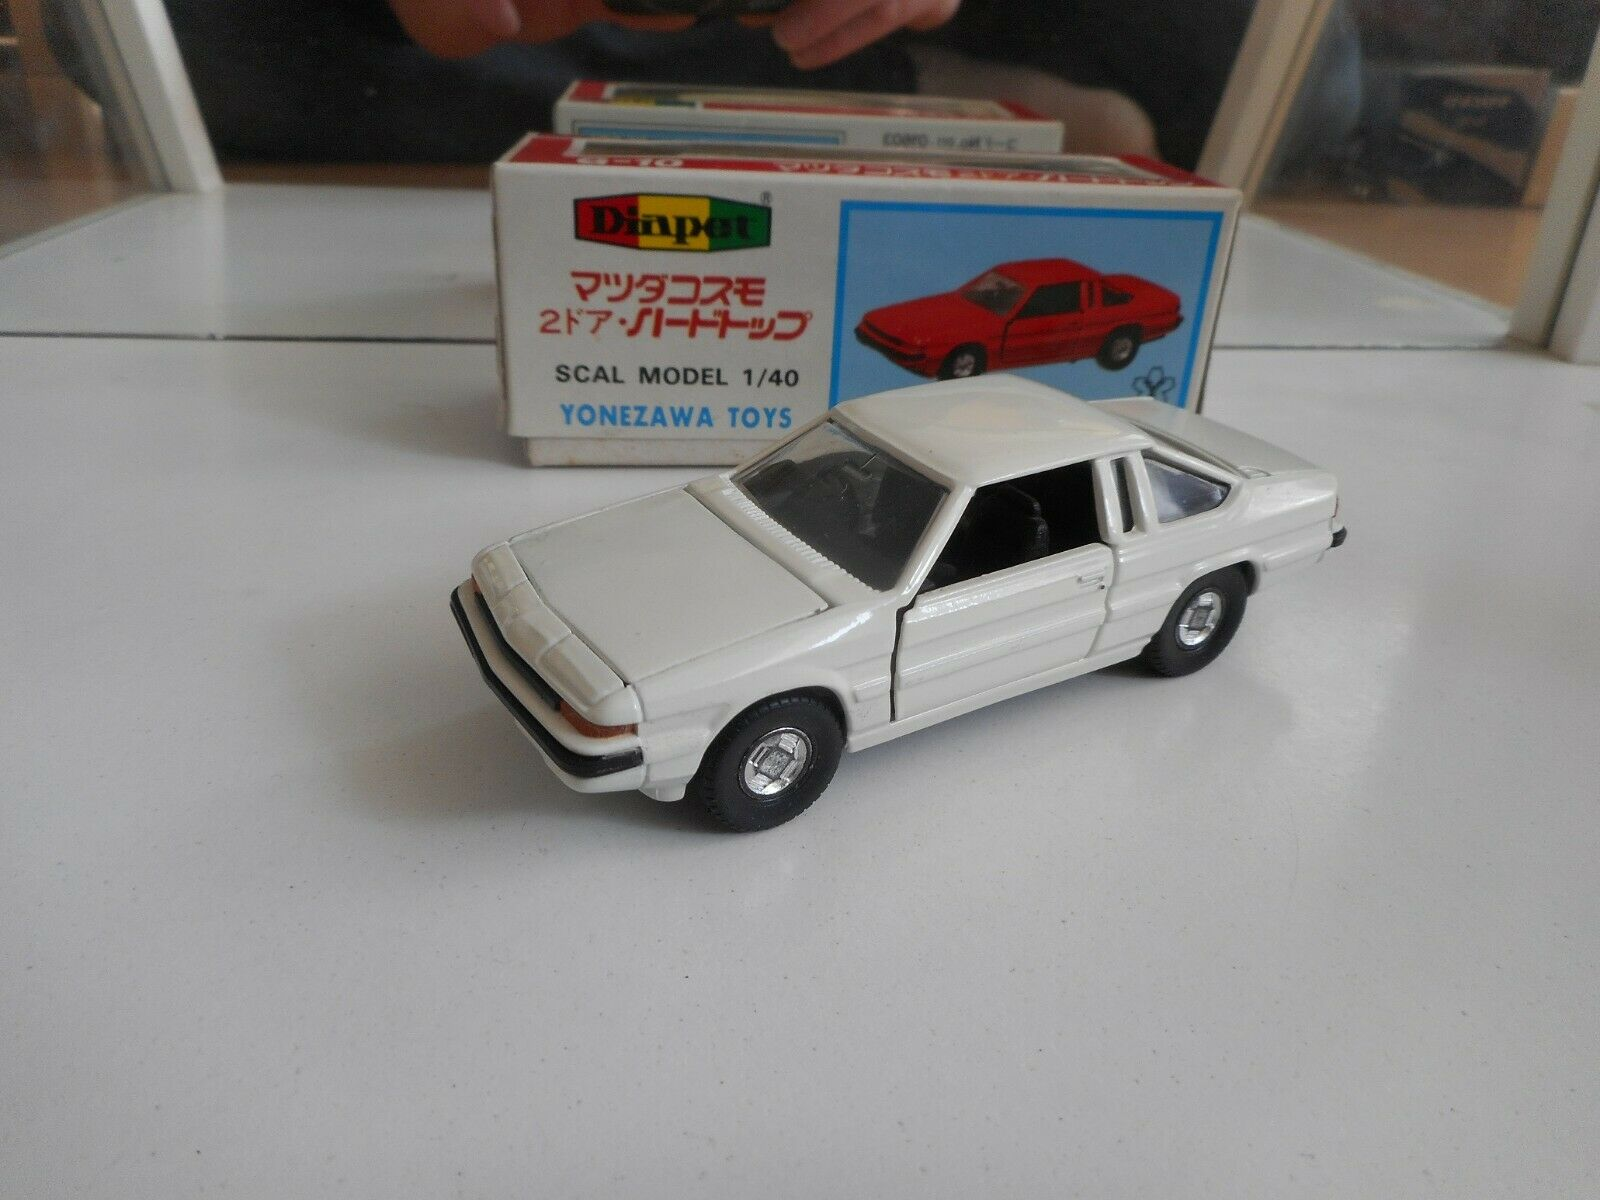 Yonezawa Toys Diapet Mazda Cosmo 2-Door Hardtop 200 EGI in White on 1 40 in Box